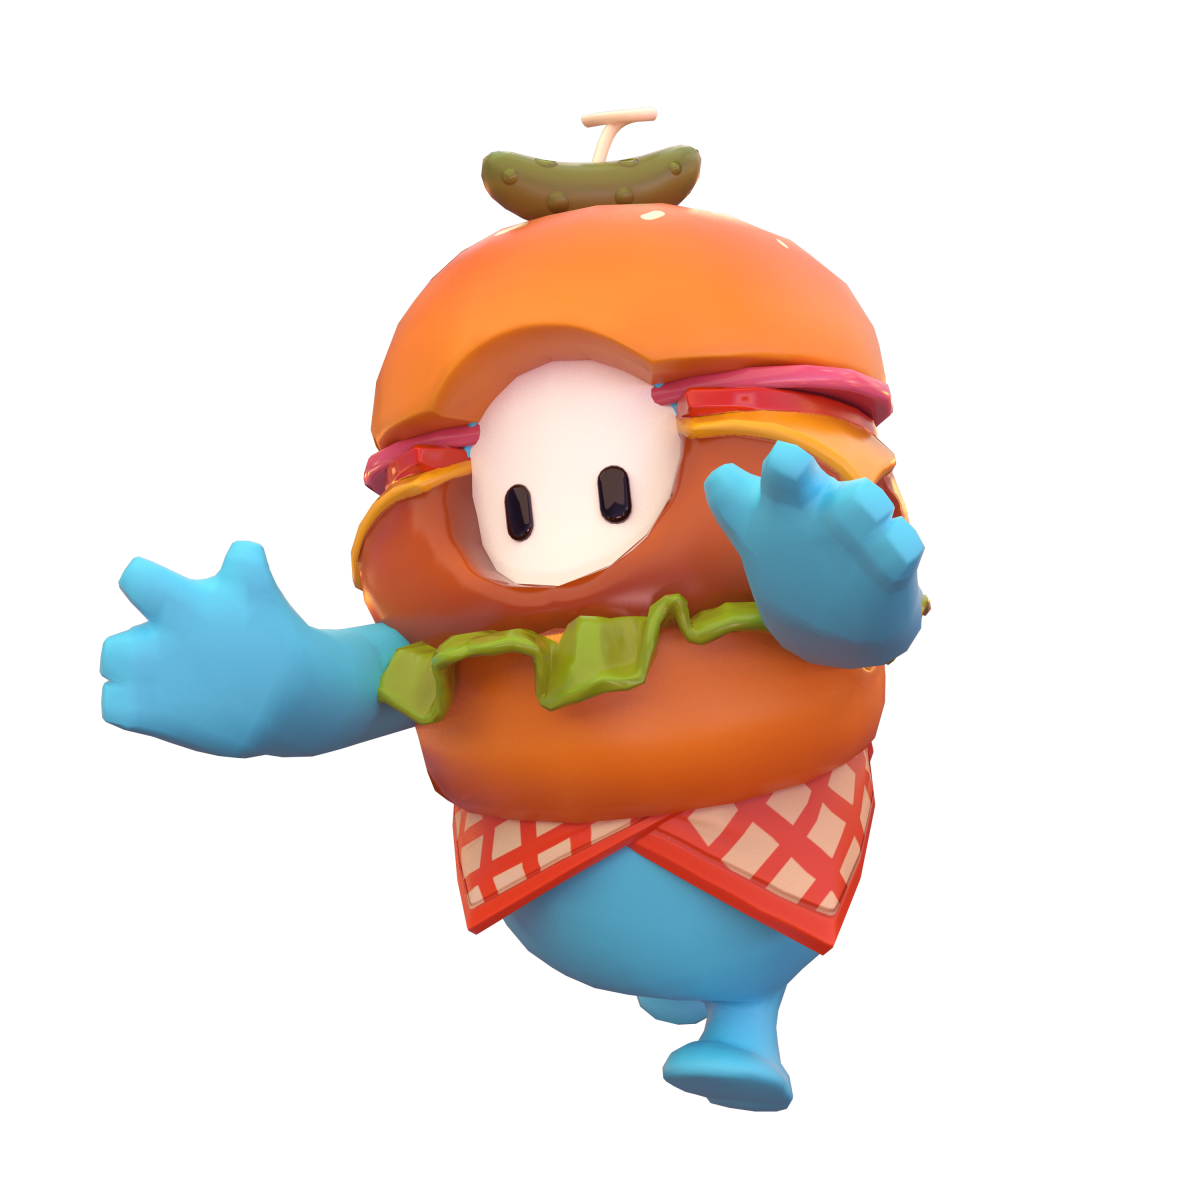 This hamburger costume was worth the five real-life dollars.